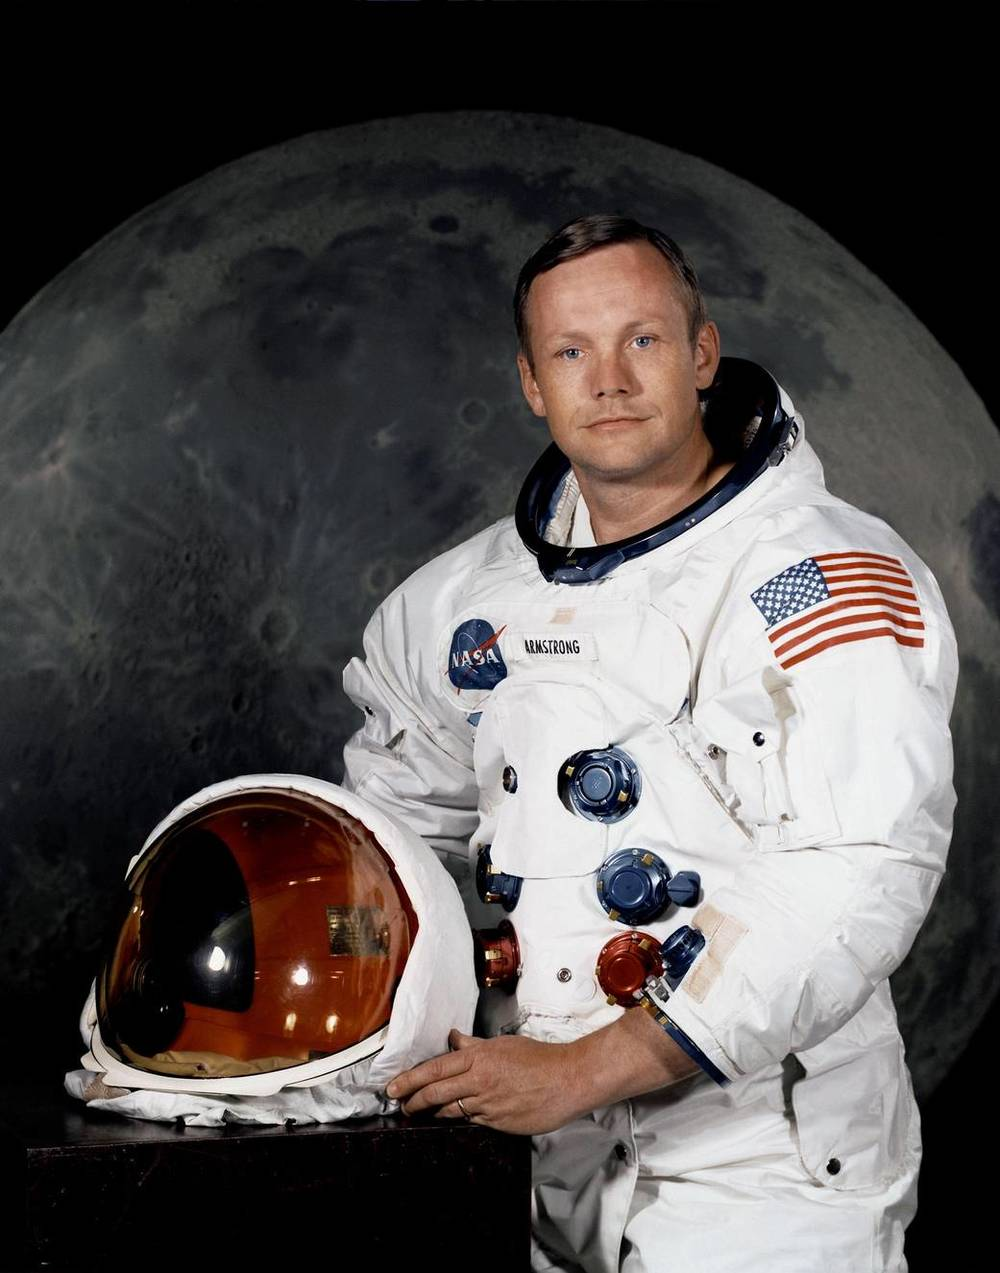 Official Portrait of Neil Armstrong . Portrait of Astronaut Neil A. Armstrong, commander of the Apollo 11 Lunar Landing mission in his space suit.  Image  credit : NASA